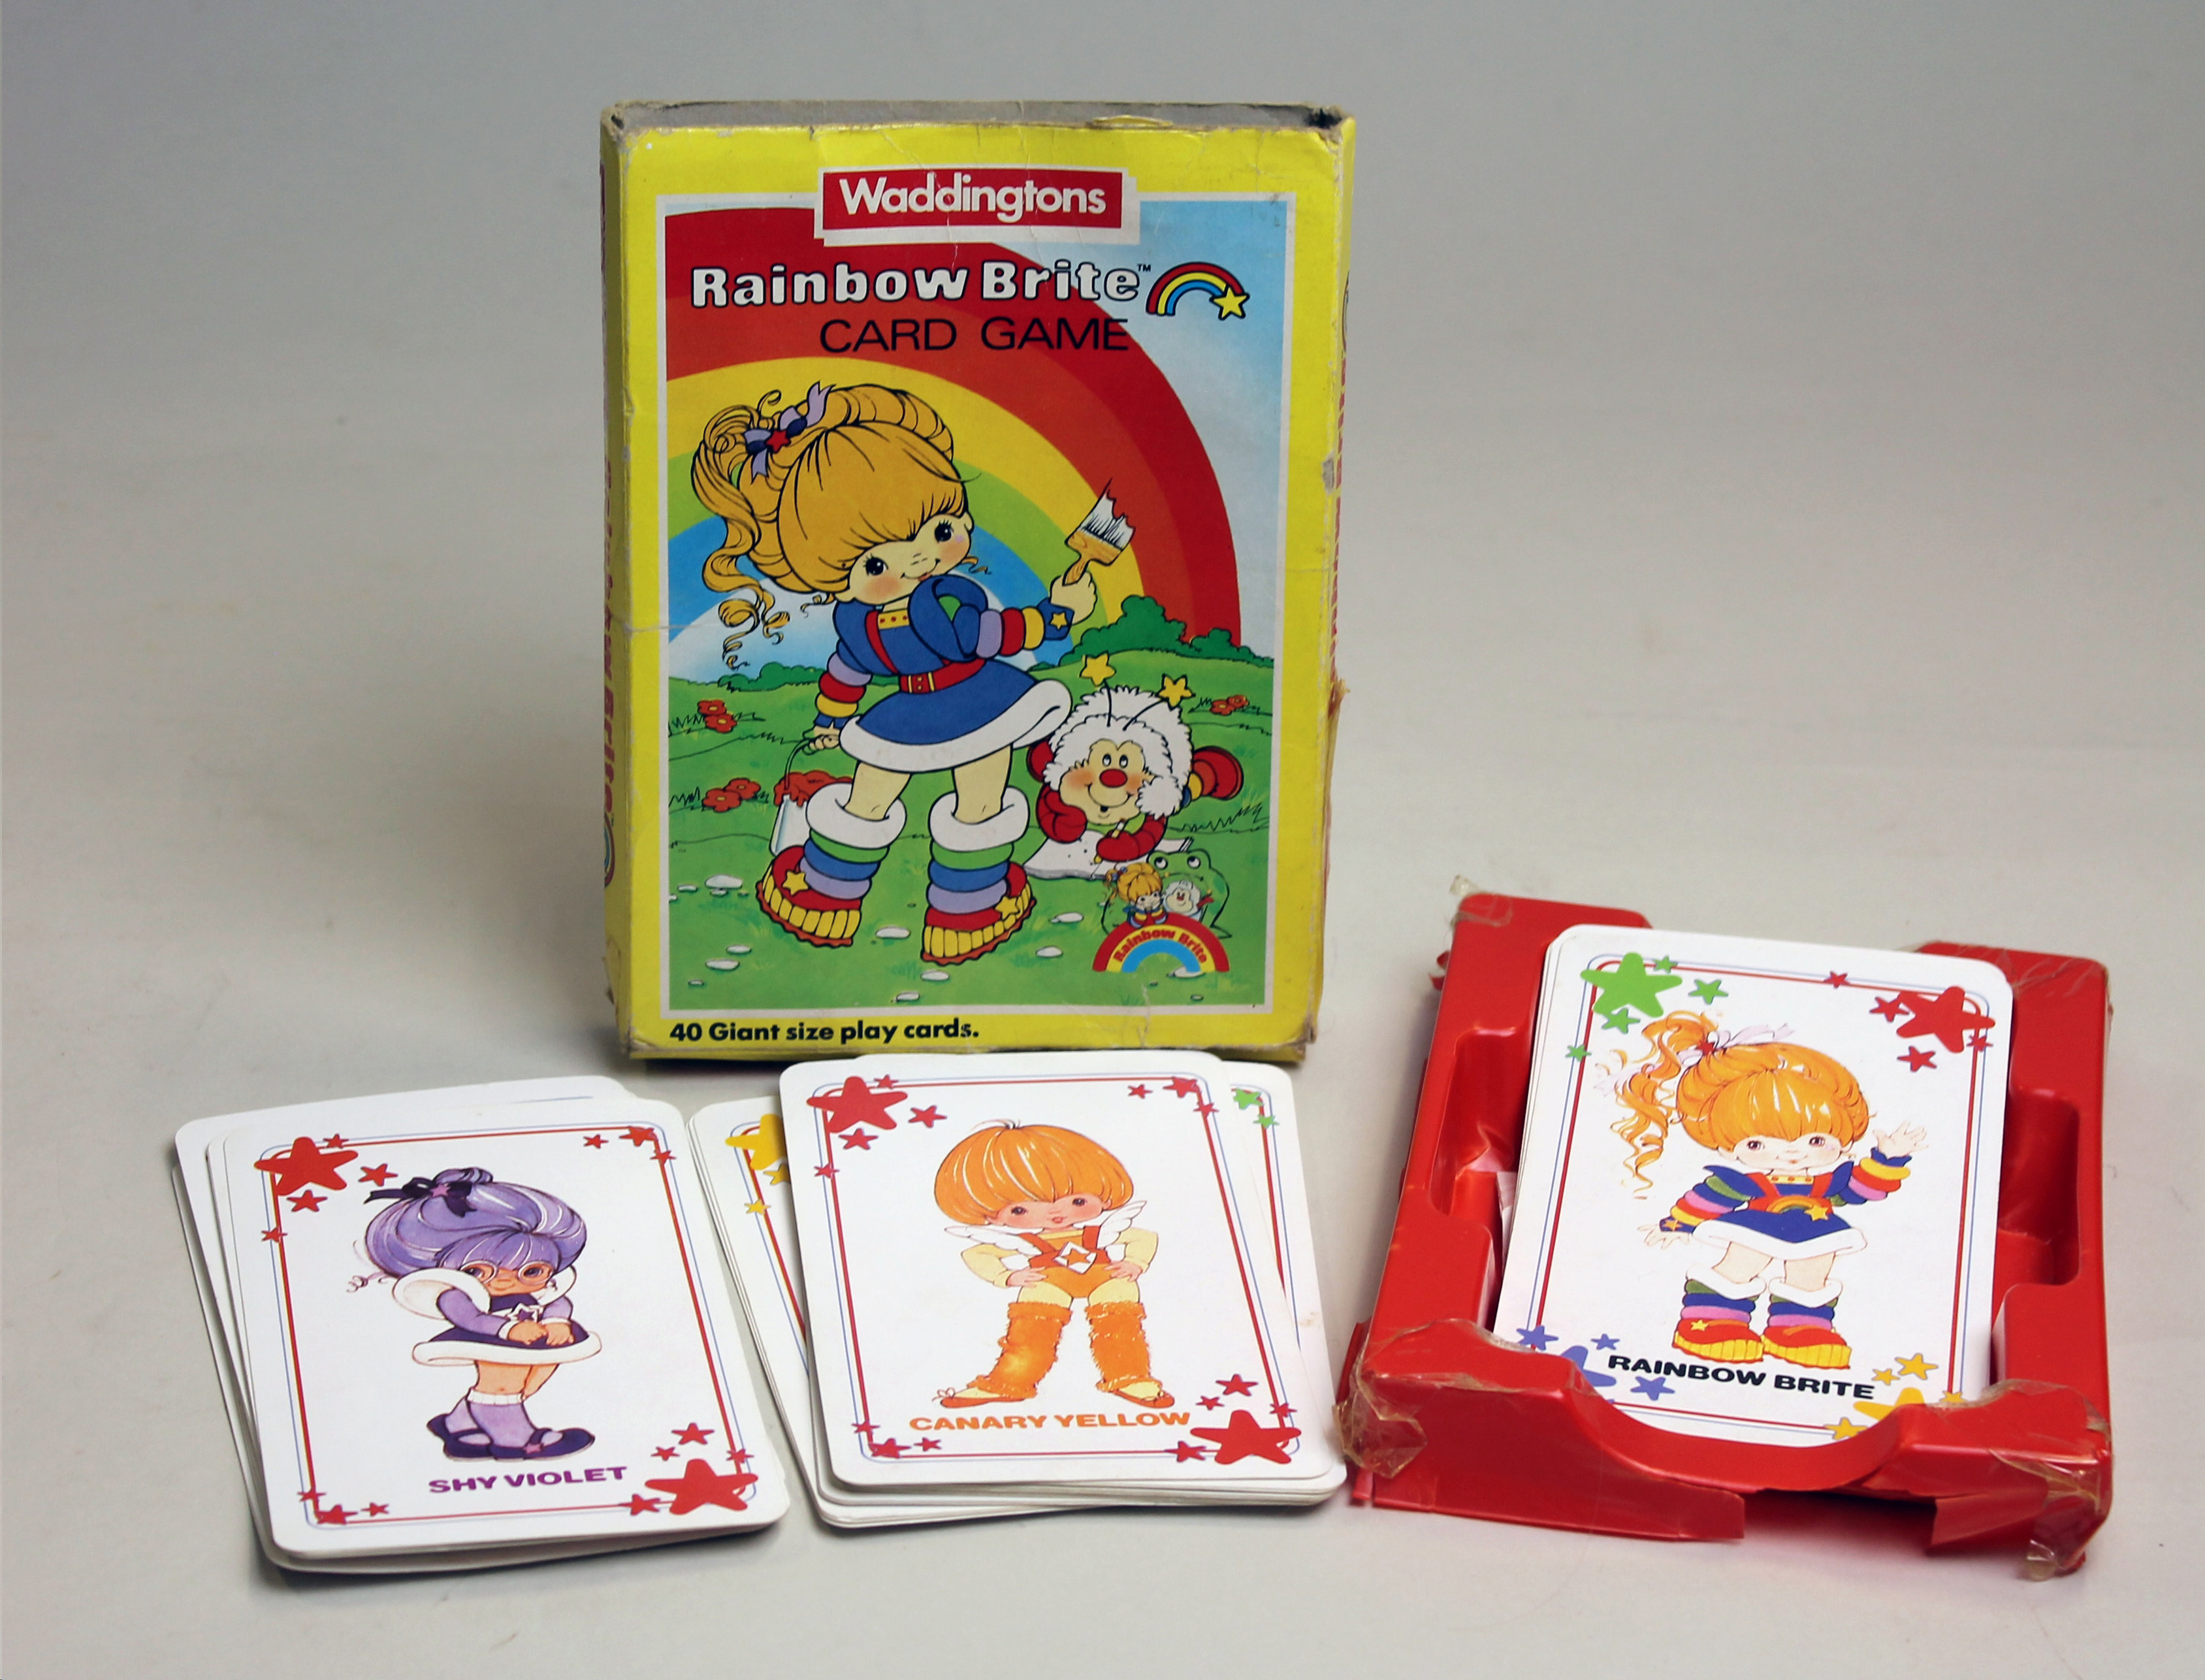 Colour photograph of a Rainbow Brite card game from Waddingtons